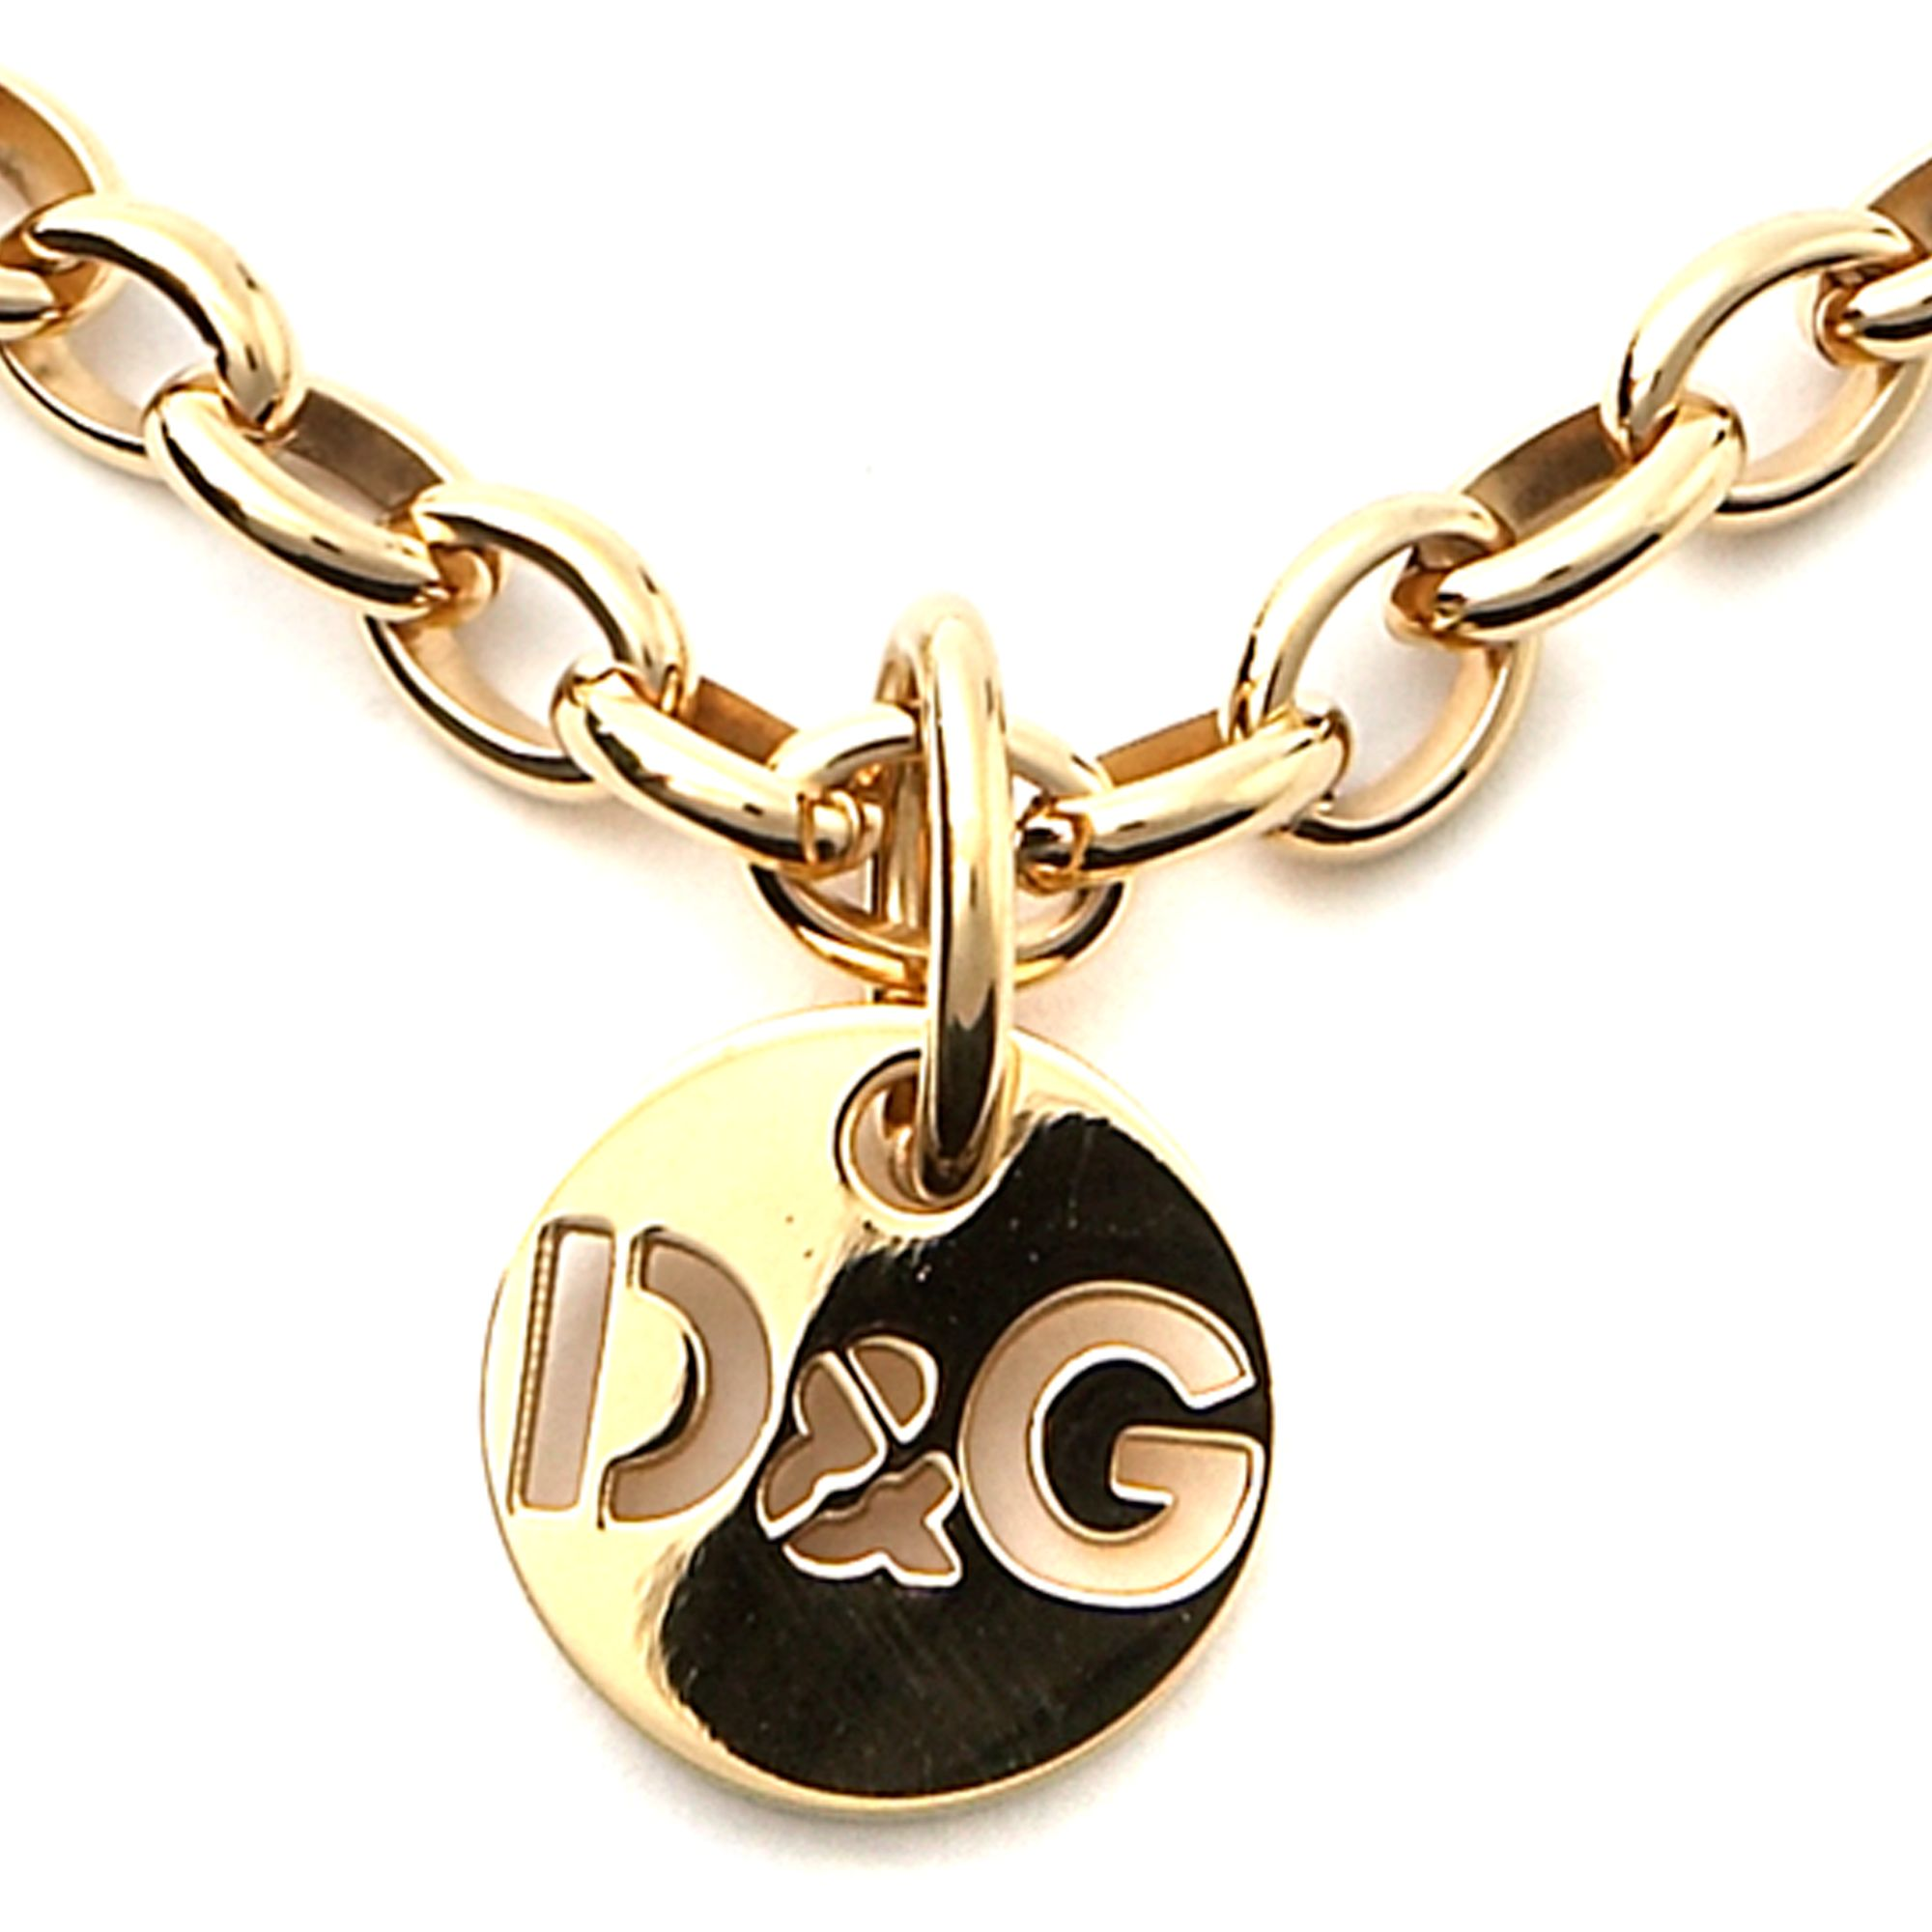 Necklaces dg idg long metal chain logo necklace